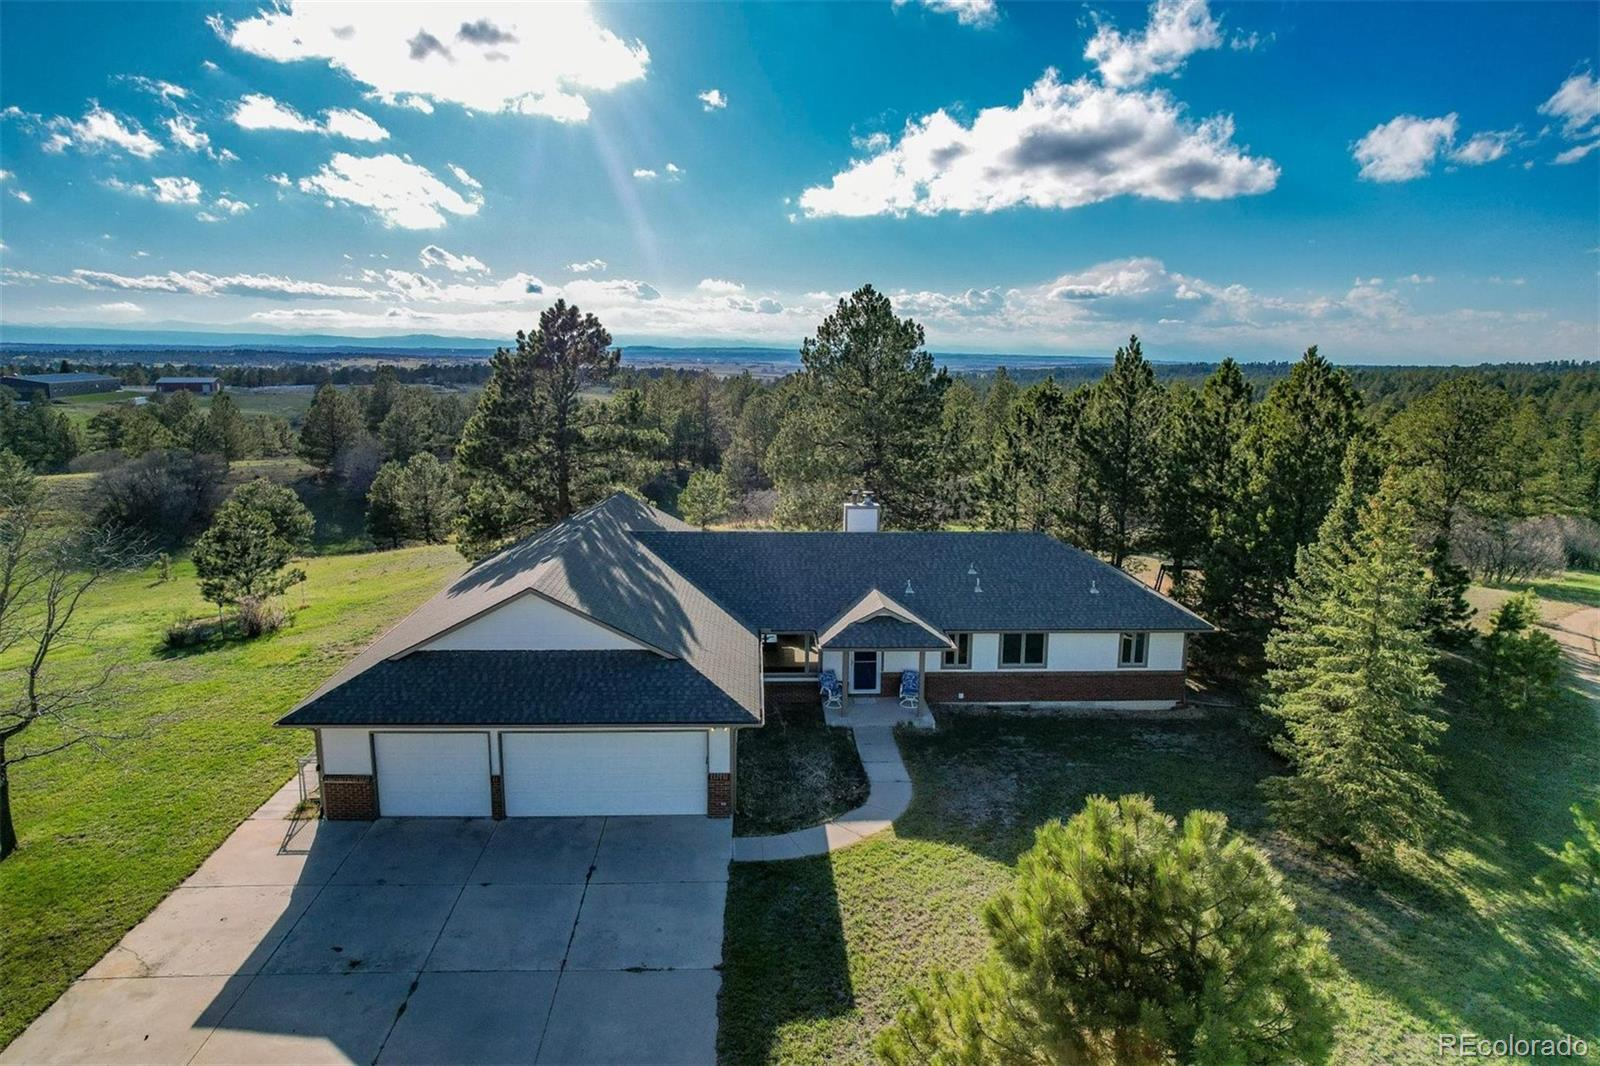 So you're wanting a home on 80 acres, with spectacular views and close proximity to town? Turns out we have the perfect property for you. Welcome to this beautiful sub-dividable oasis full of trees, room to breath and land that will leave you with endless possibilities. This ranch style home is situated perfectly at the peak of the property, giving you visible access to the mountains and all that you'll own. In a world where it becomes increasingly difficult to build a lifestyle, this majestic property has what it takes to lure you in, and never let you leave. Multiple wells, mineral/water rights and the flexibility to subdivide checks all the boxes. You want it. We've got it.